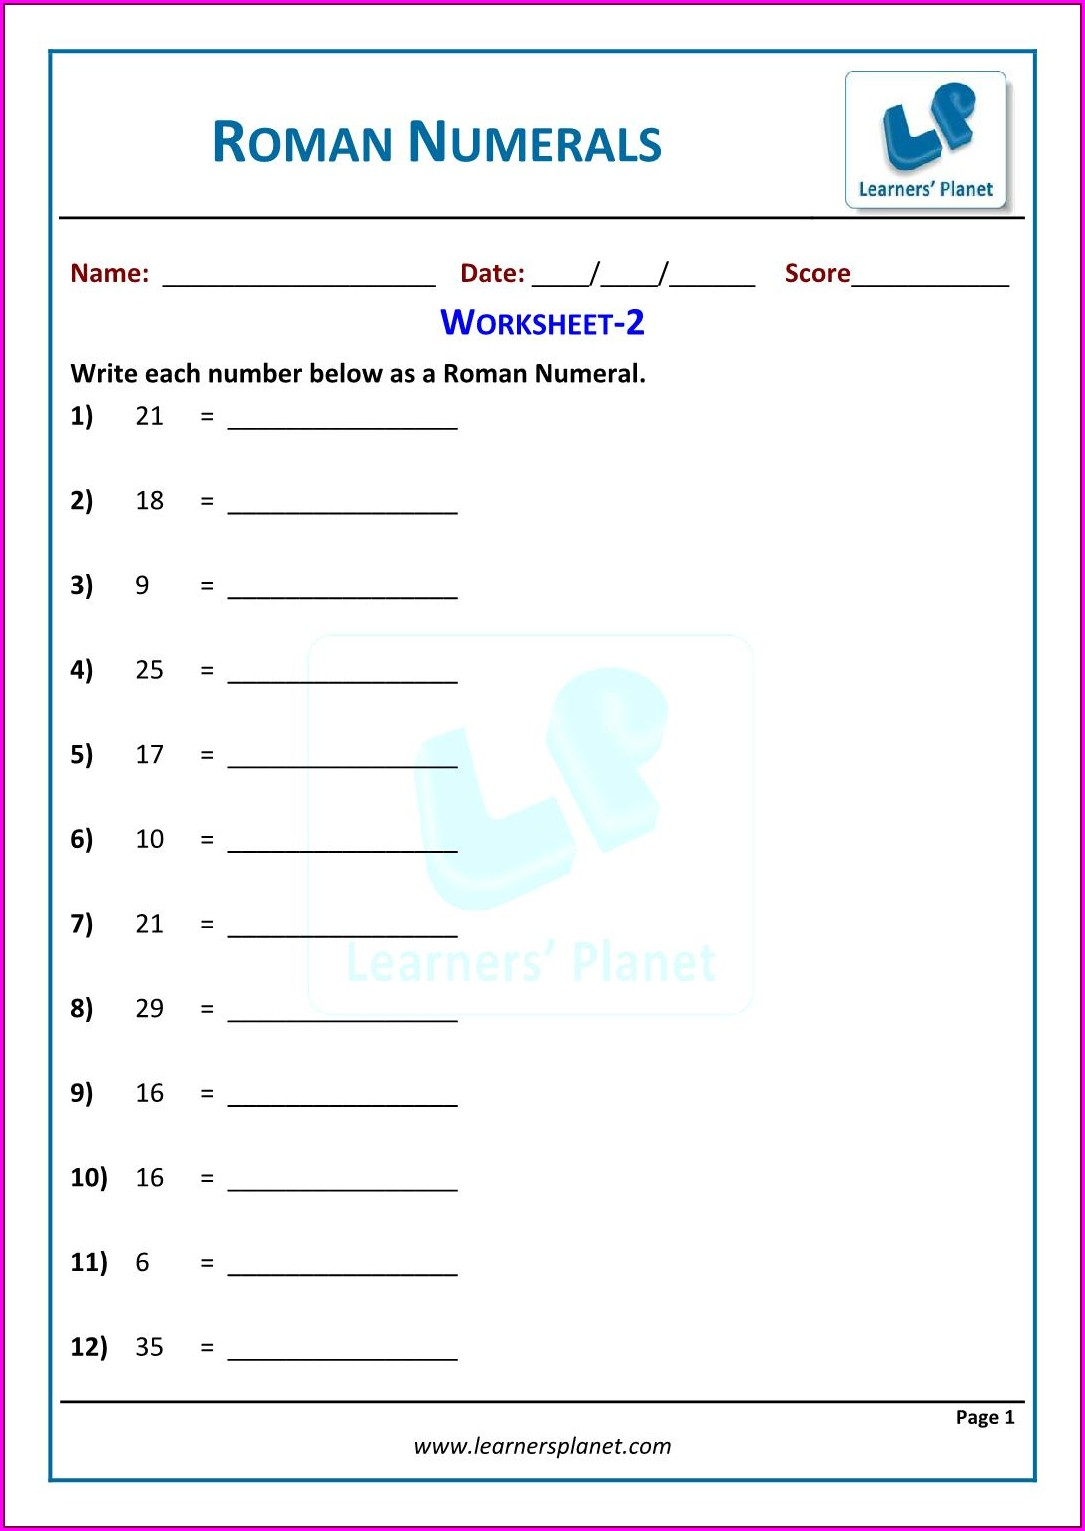 Roman Numerals Worksheet 1 Worksheet Resume Examples